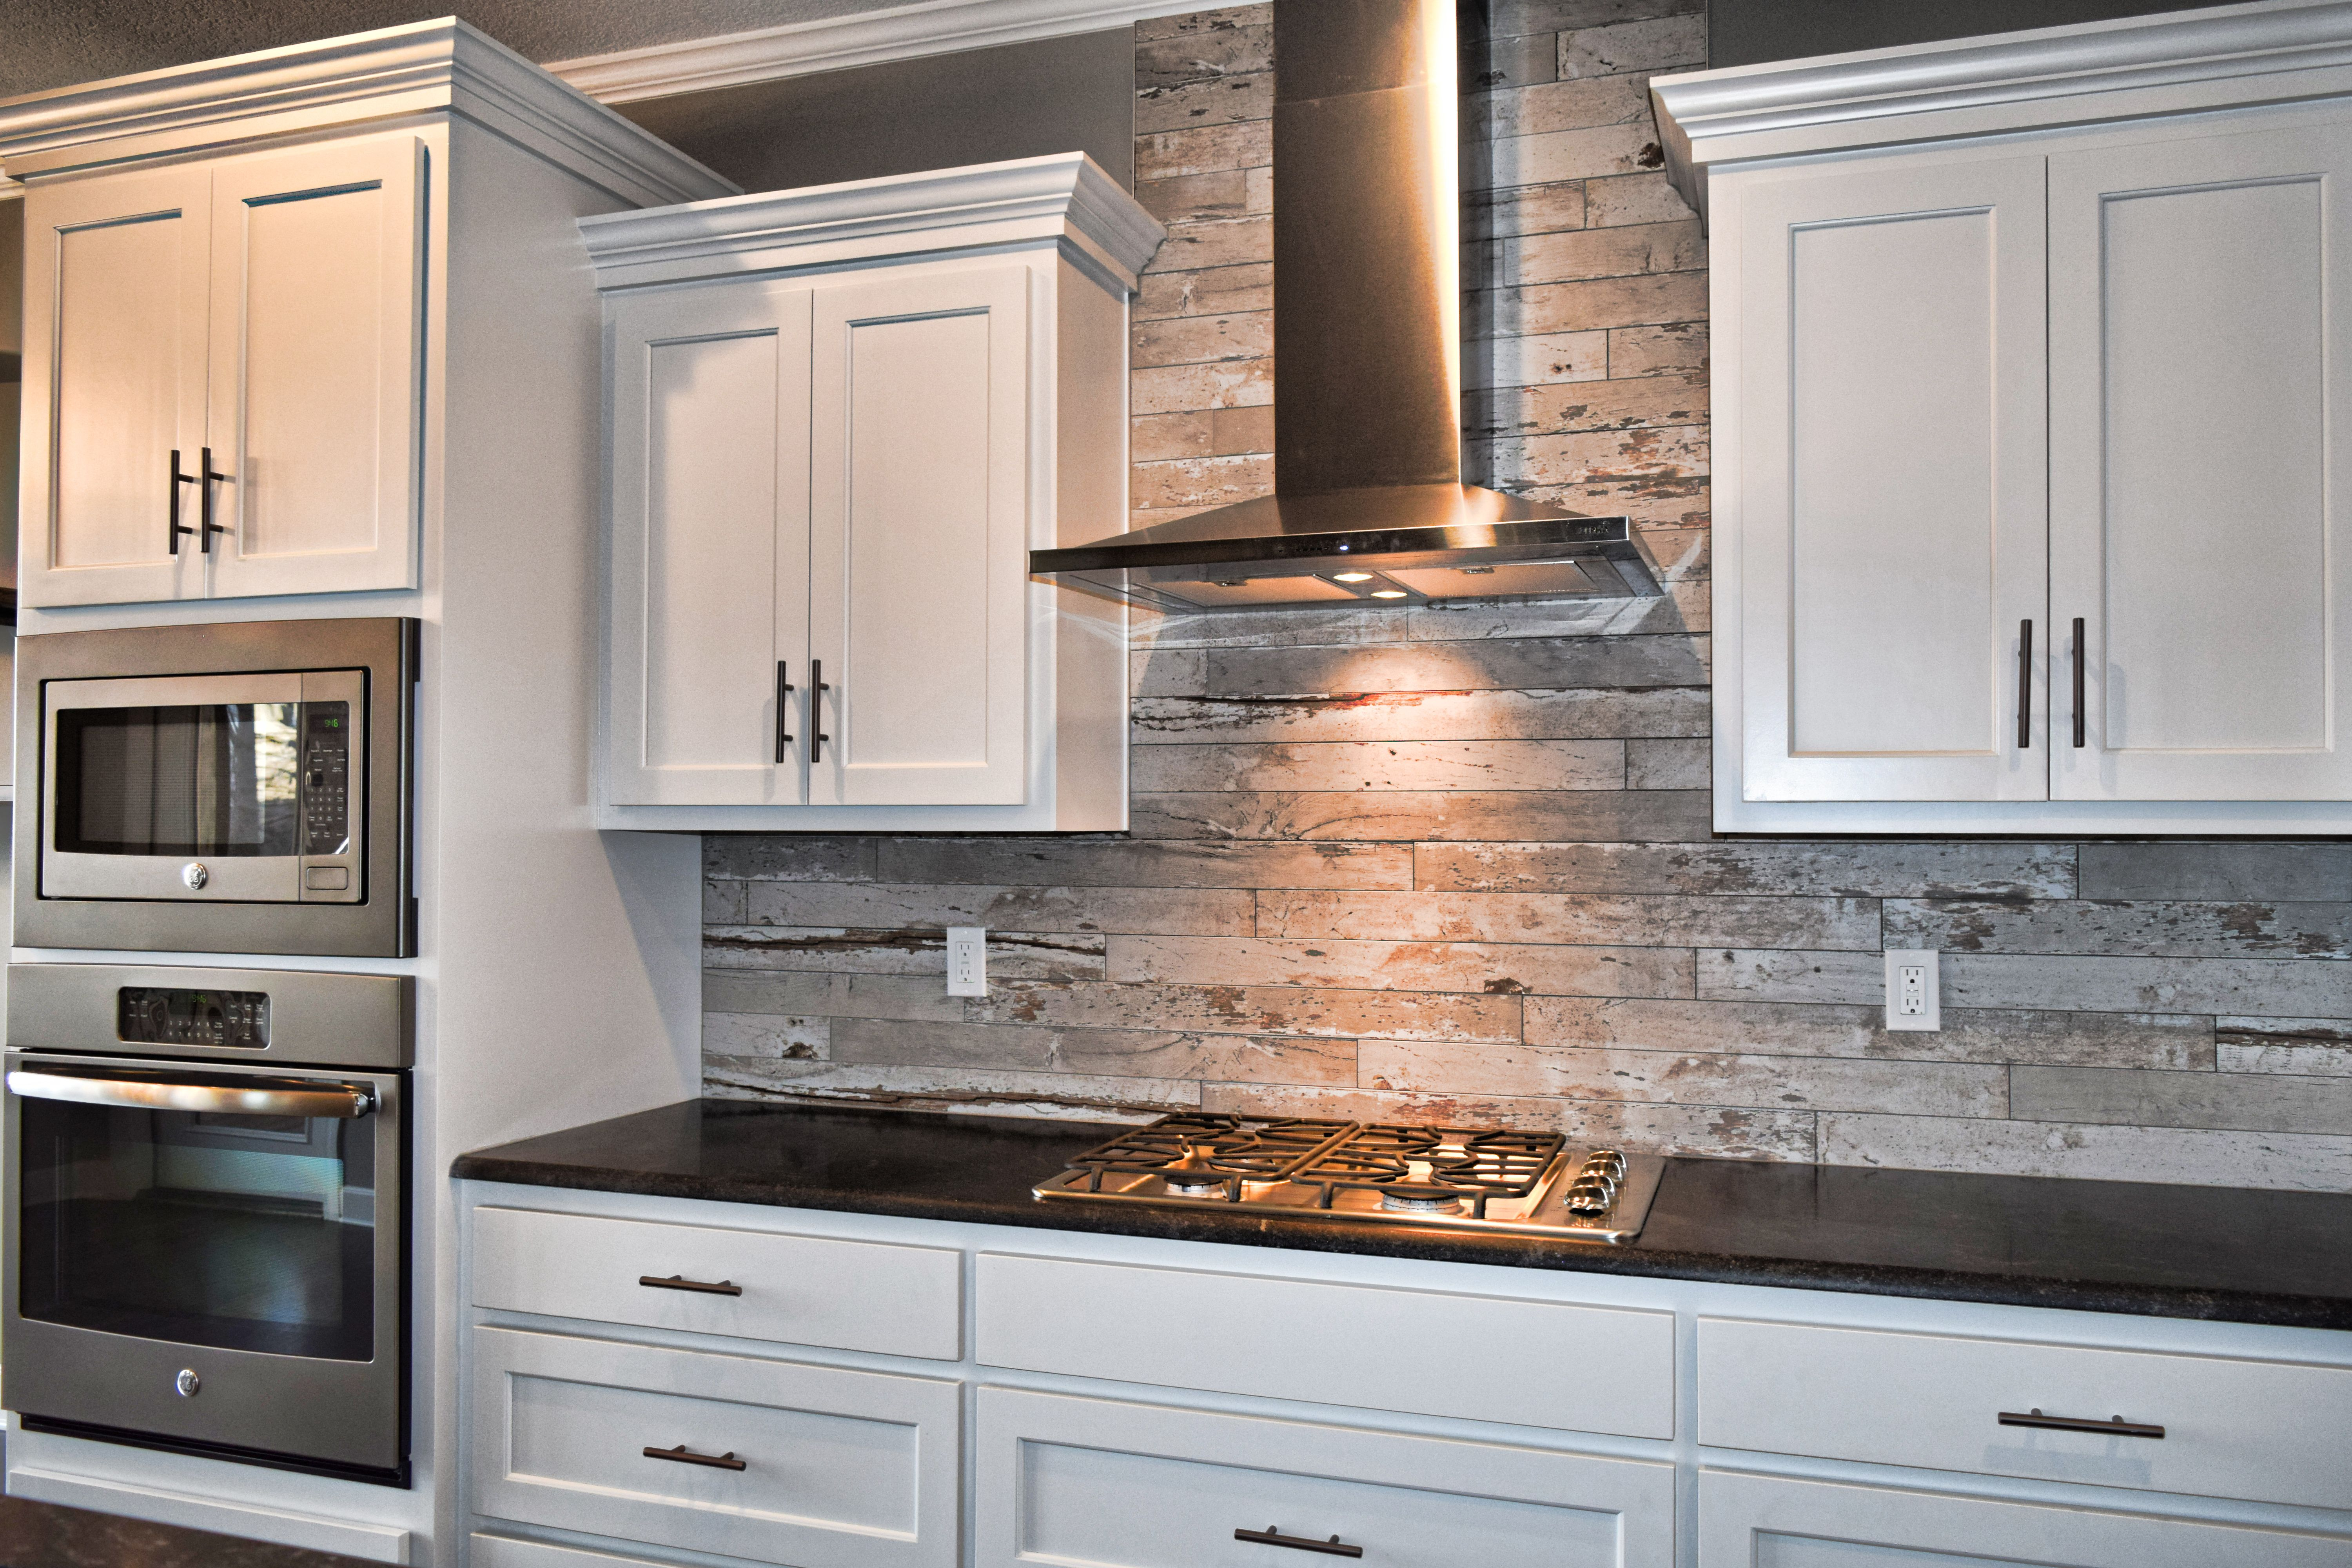 White Cabinets Wood Look Tile Kitchen Backsplash Flat Panel Cabinets White Kitche Wood Tile Kitchen Backsplash Wood Tile Kitchen Kitchen Backsplash Designs